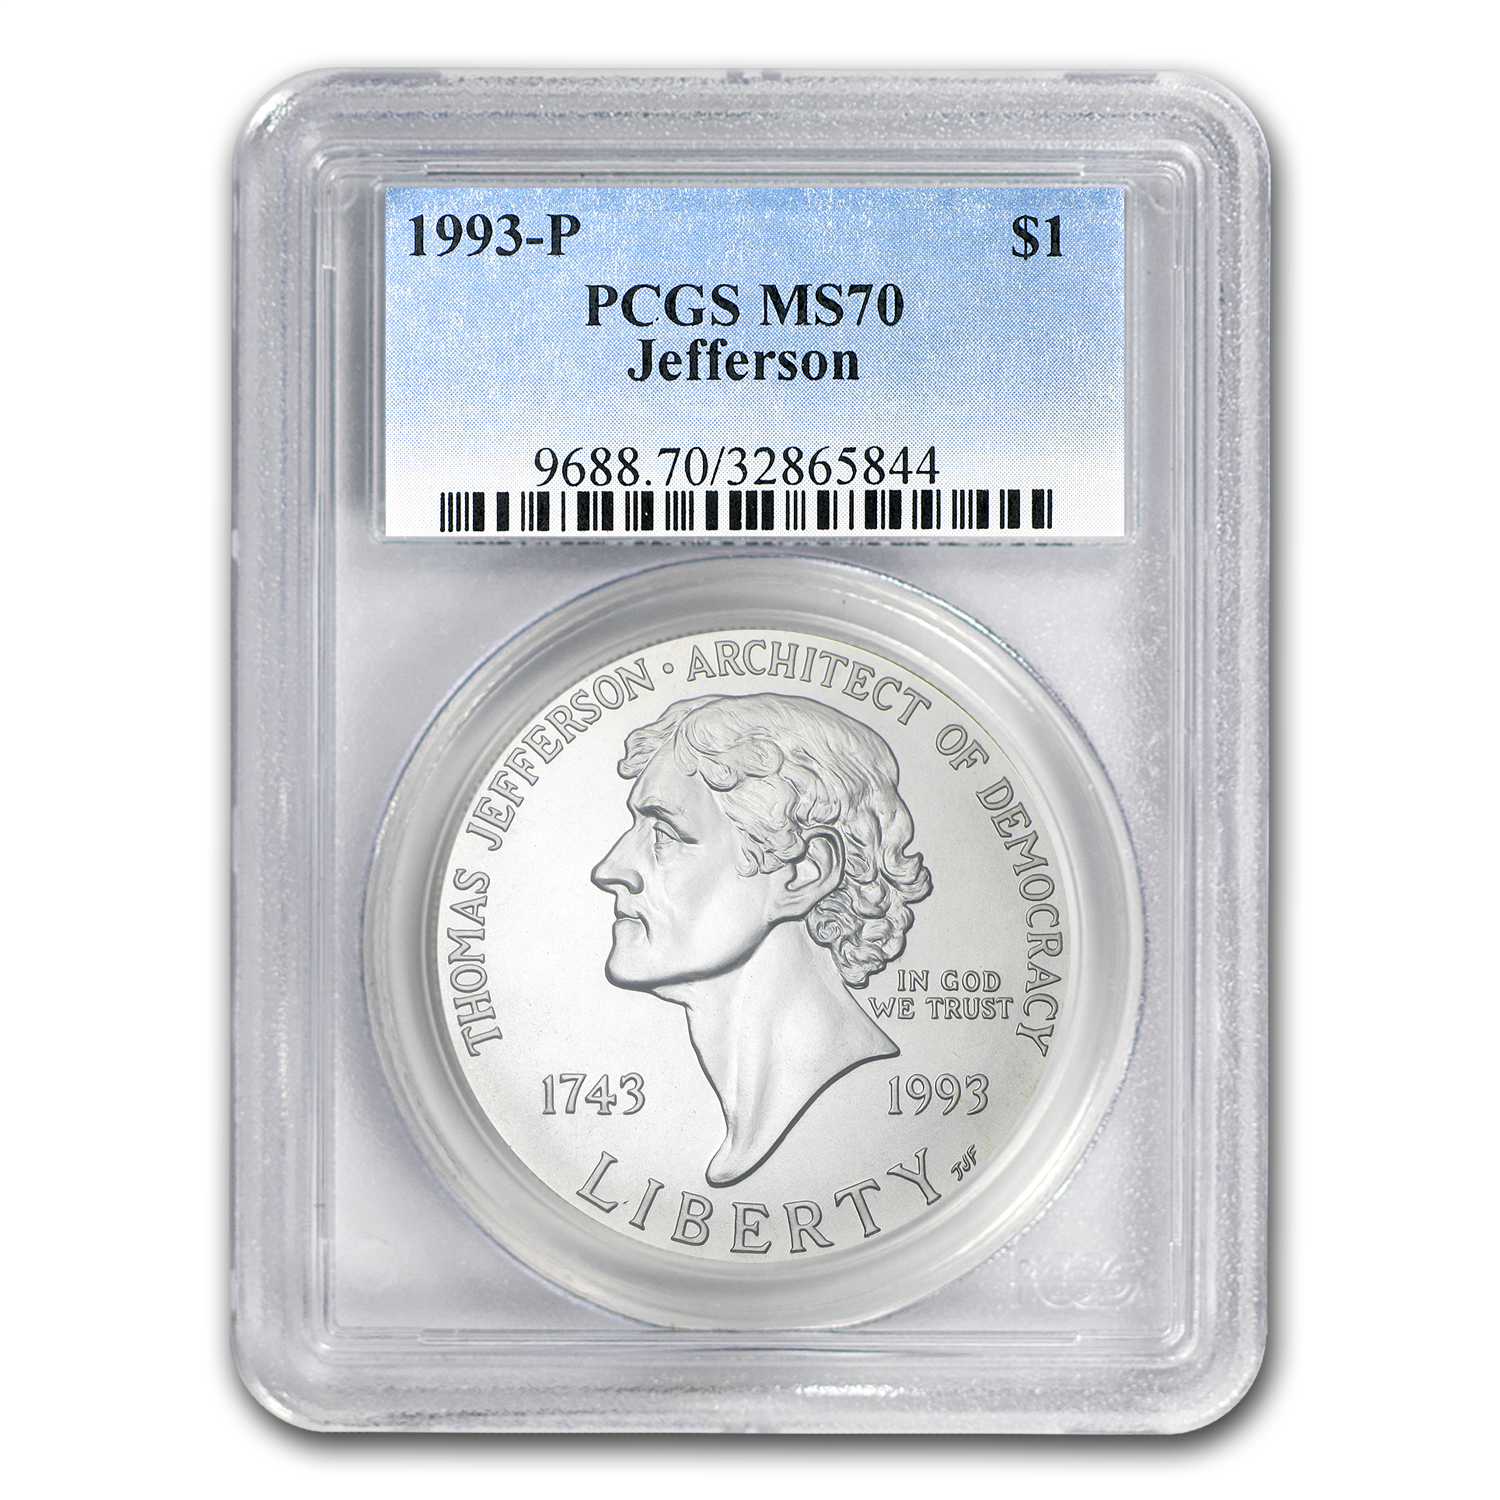 1993-P Jefferson 250th Anniv $1 Silver Commem MS-70 PCGS